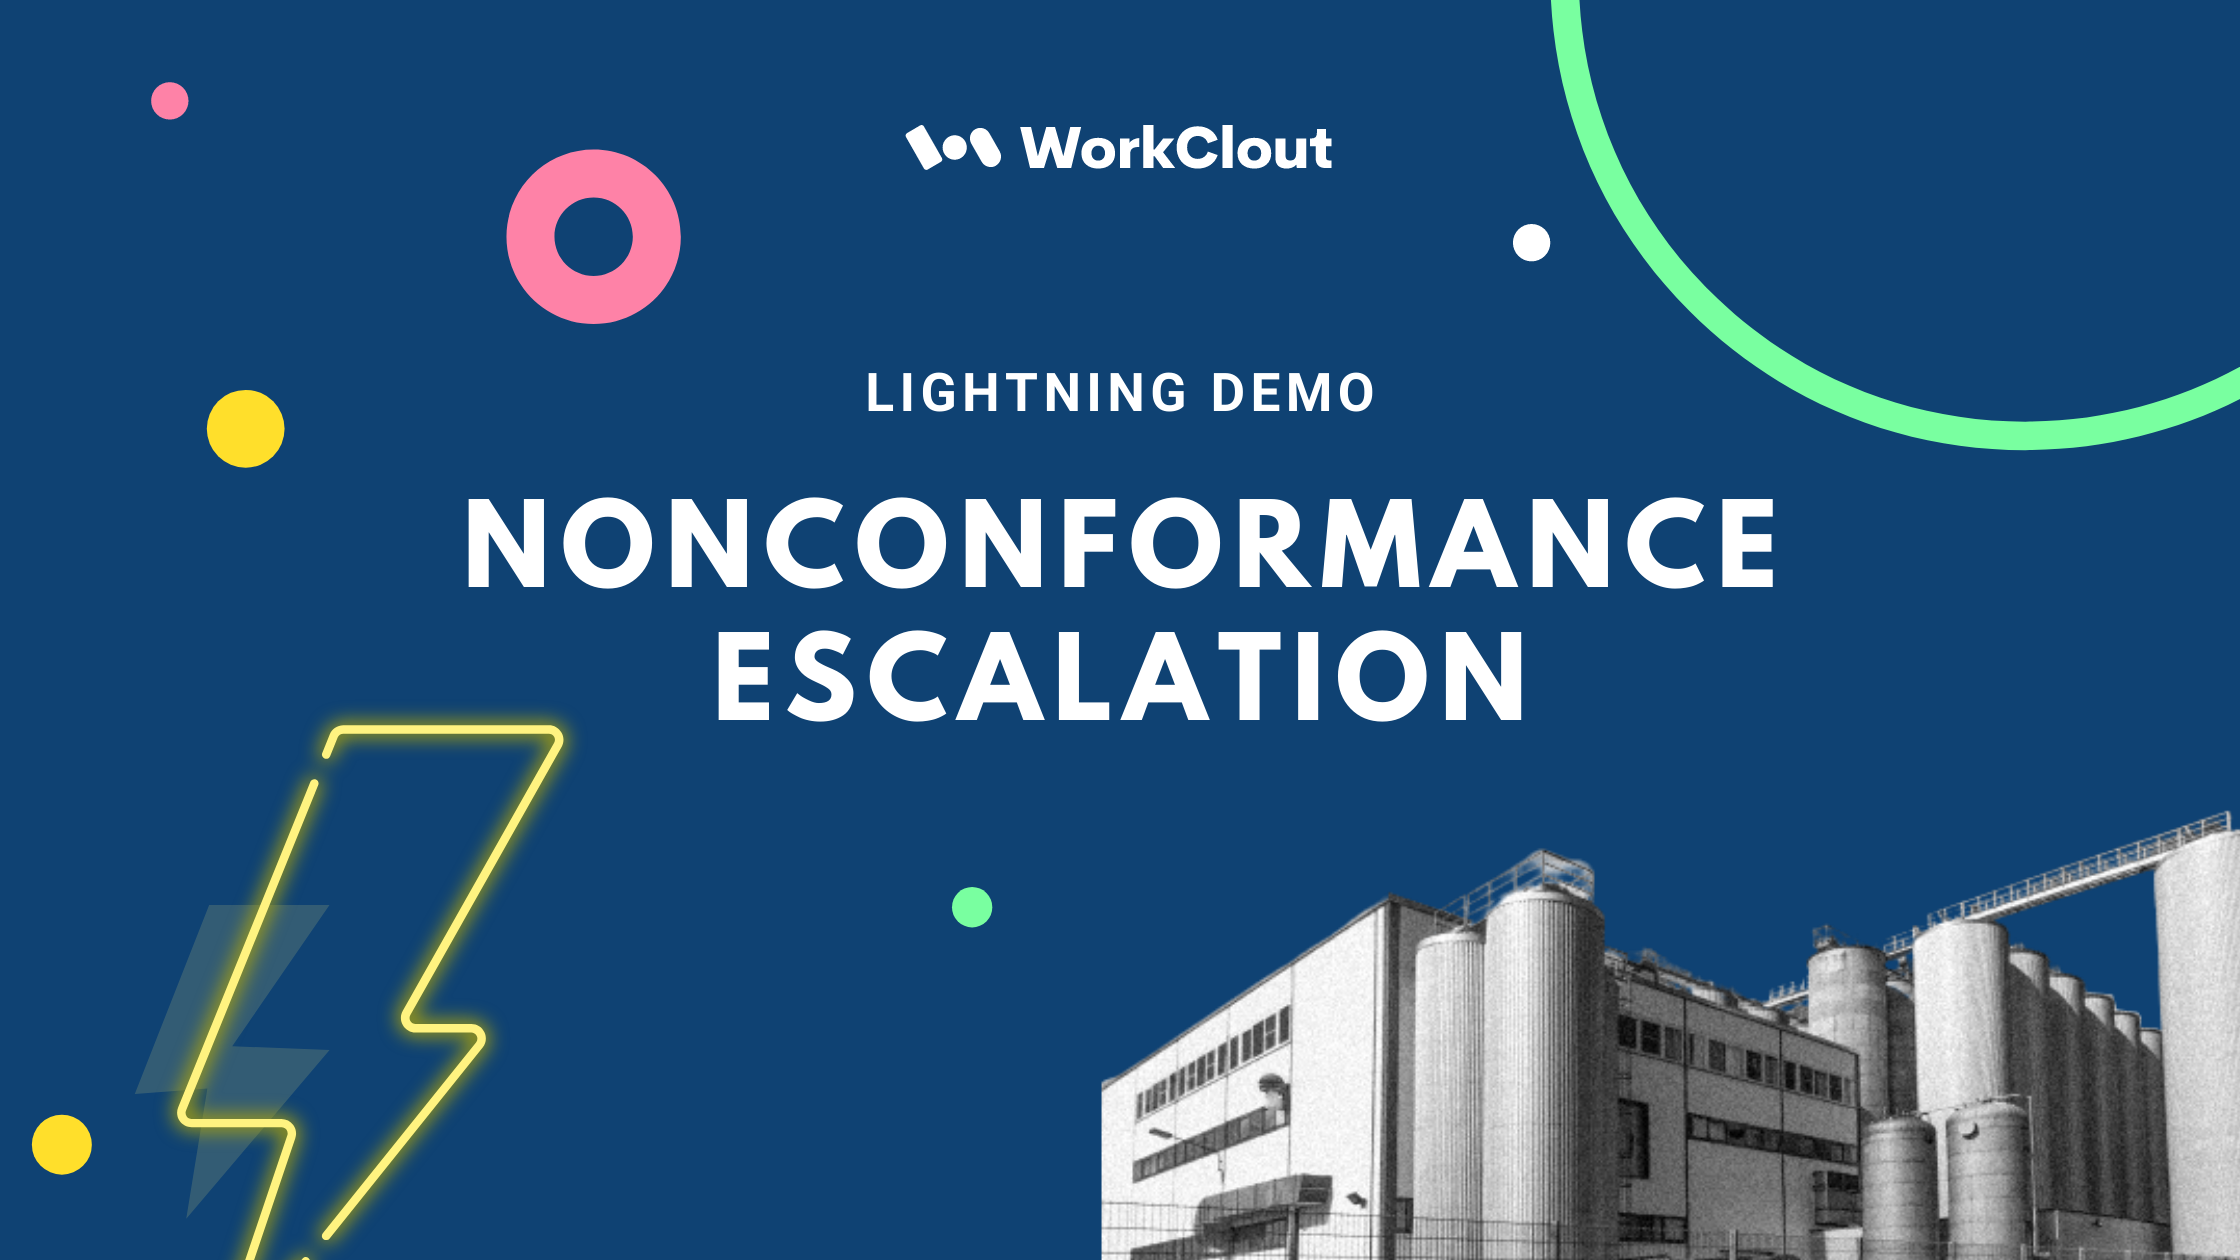 Lightning Demo - Nonconformance Escalation